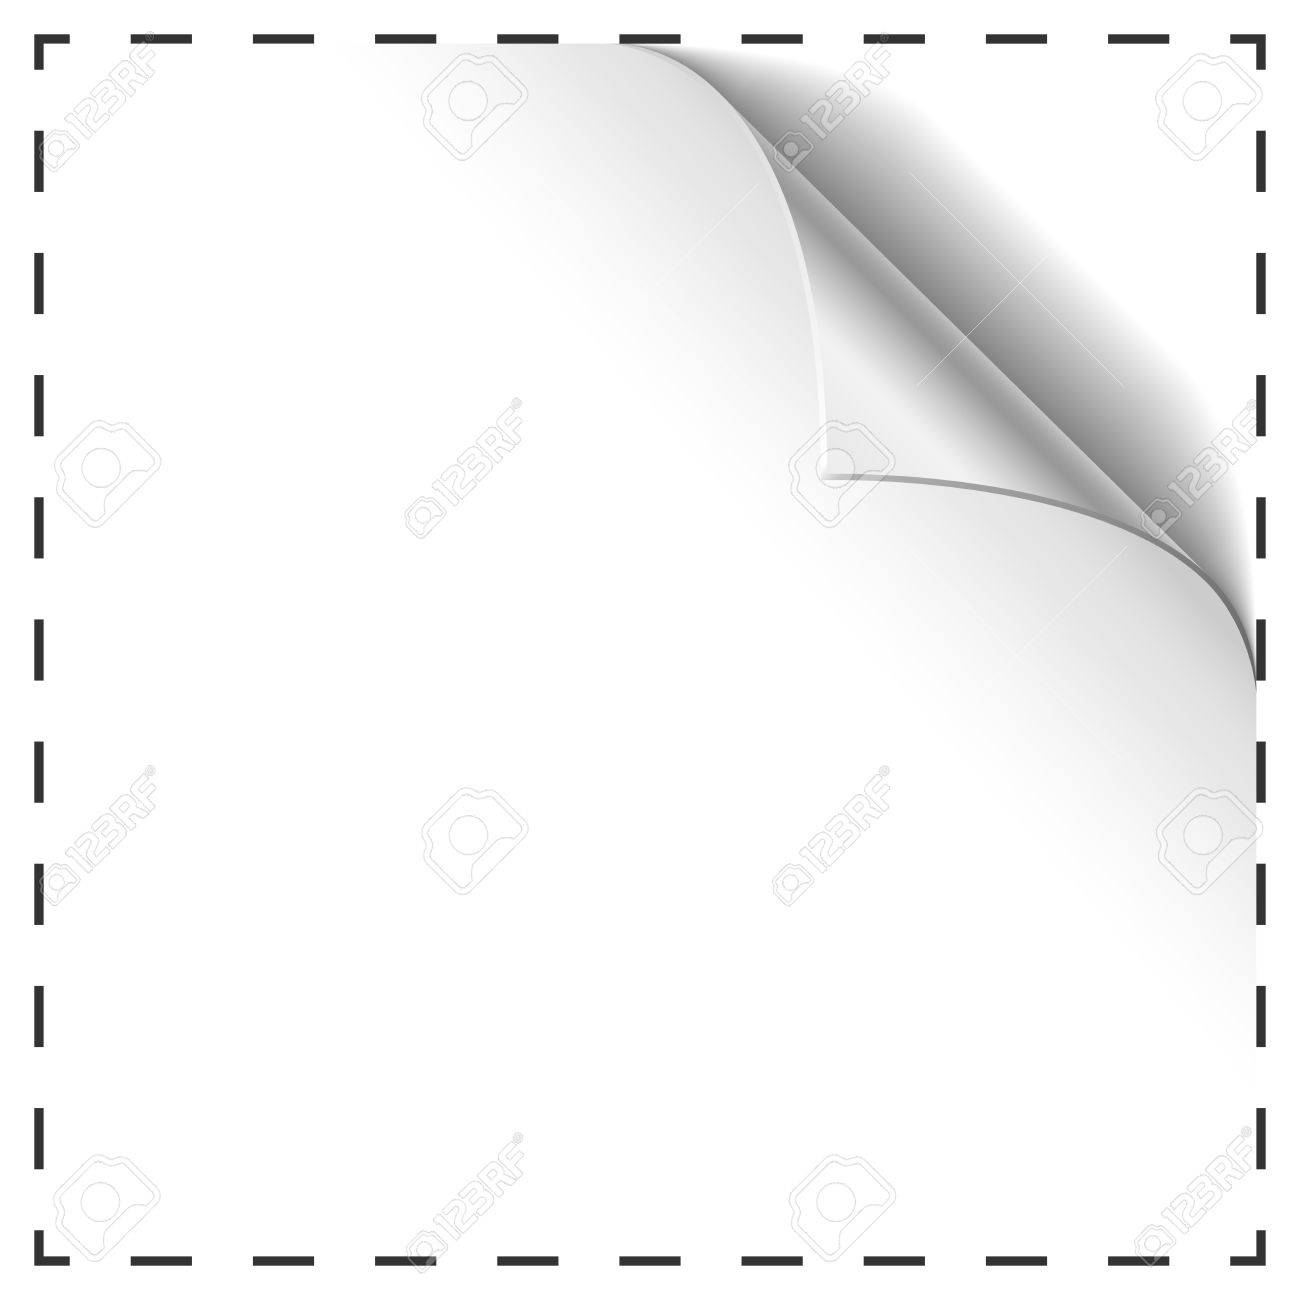 blank coupon vector template curled corner royalty blank coupon vector template curled corner stock vector 32155407